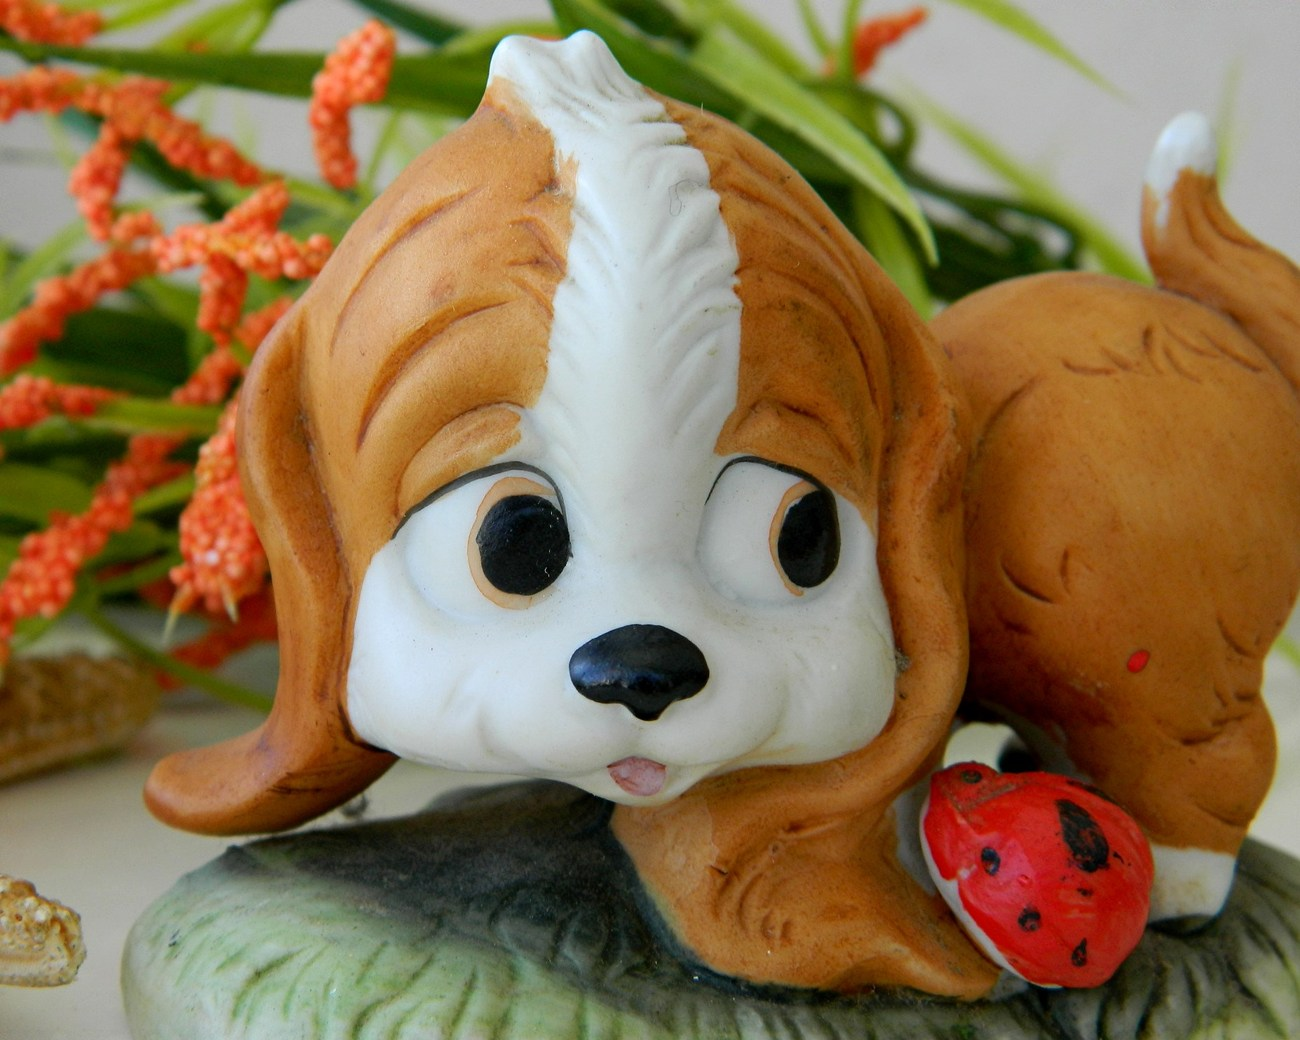 Vintage_spaniel_dog_figurine_with_ladybug_porcelain_lego_figurine